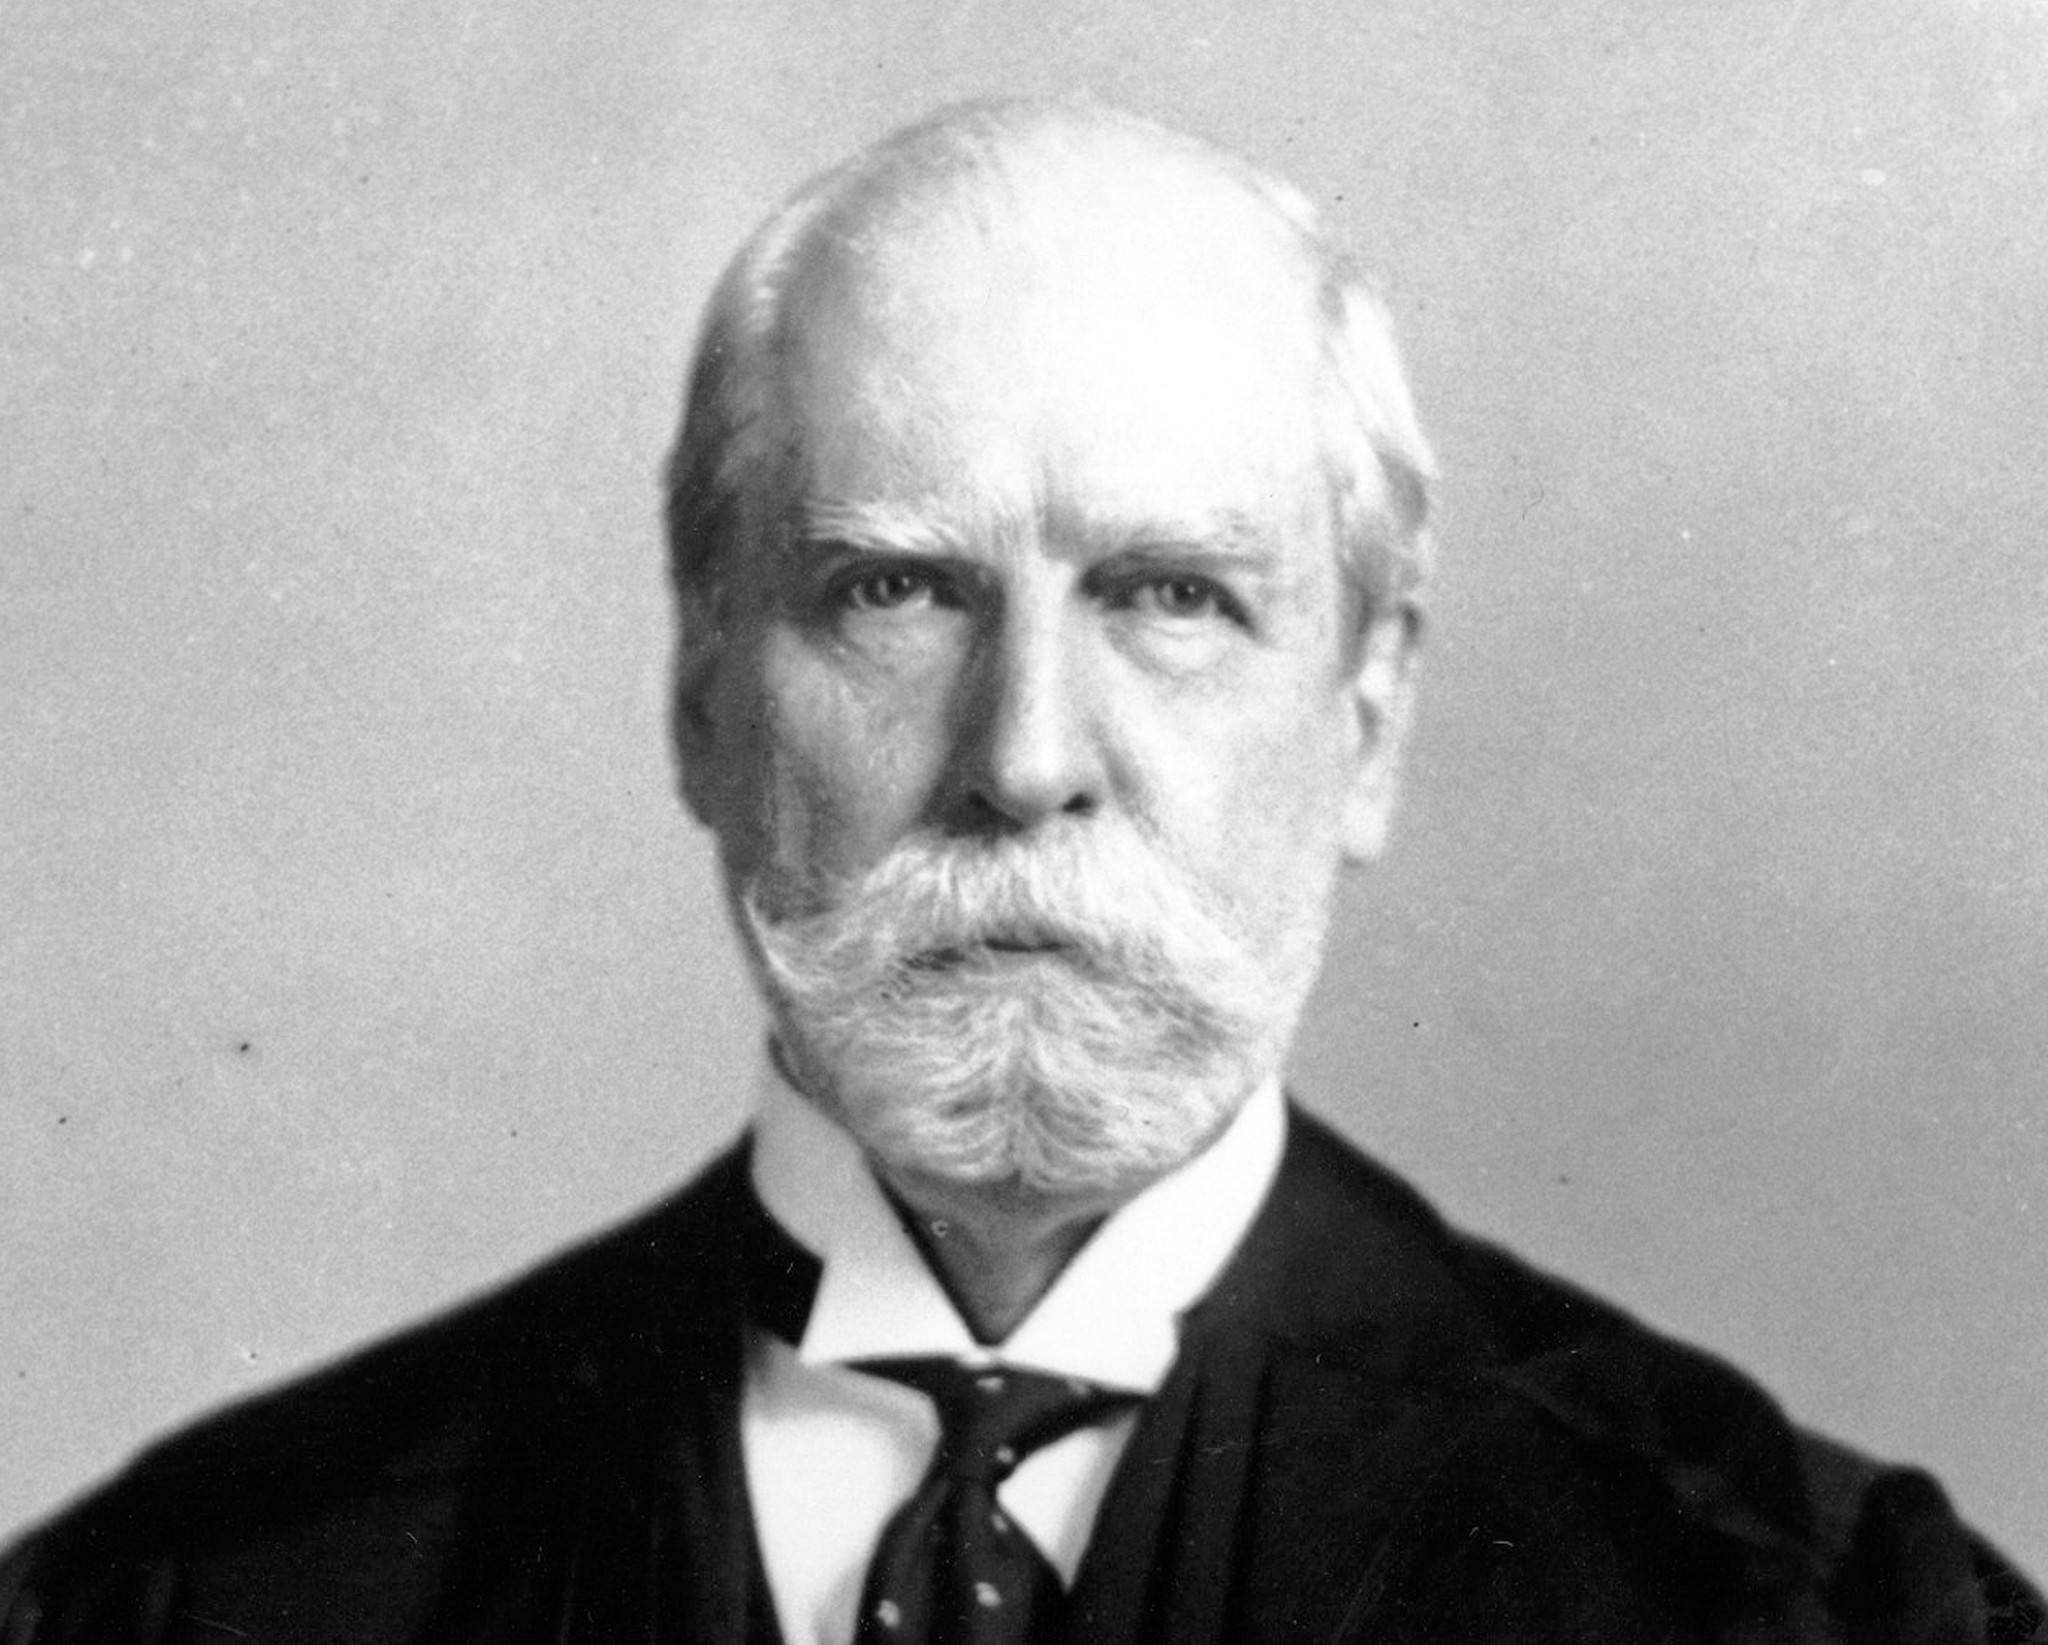 A century ago, a noble fight: What Charles Evans Hughes did when the New York Legislature refused to seat five Socialists